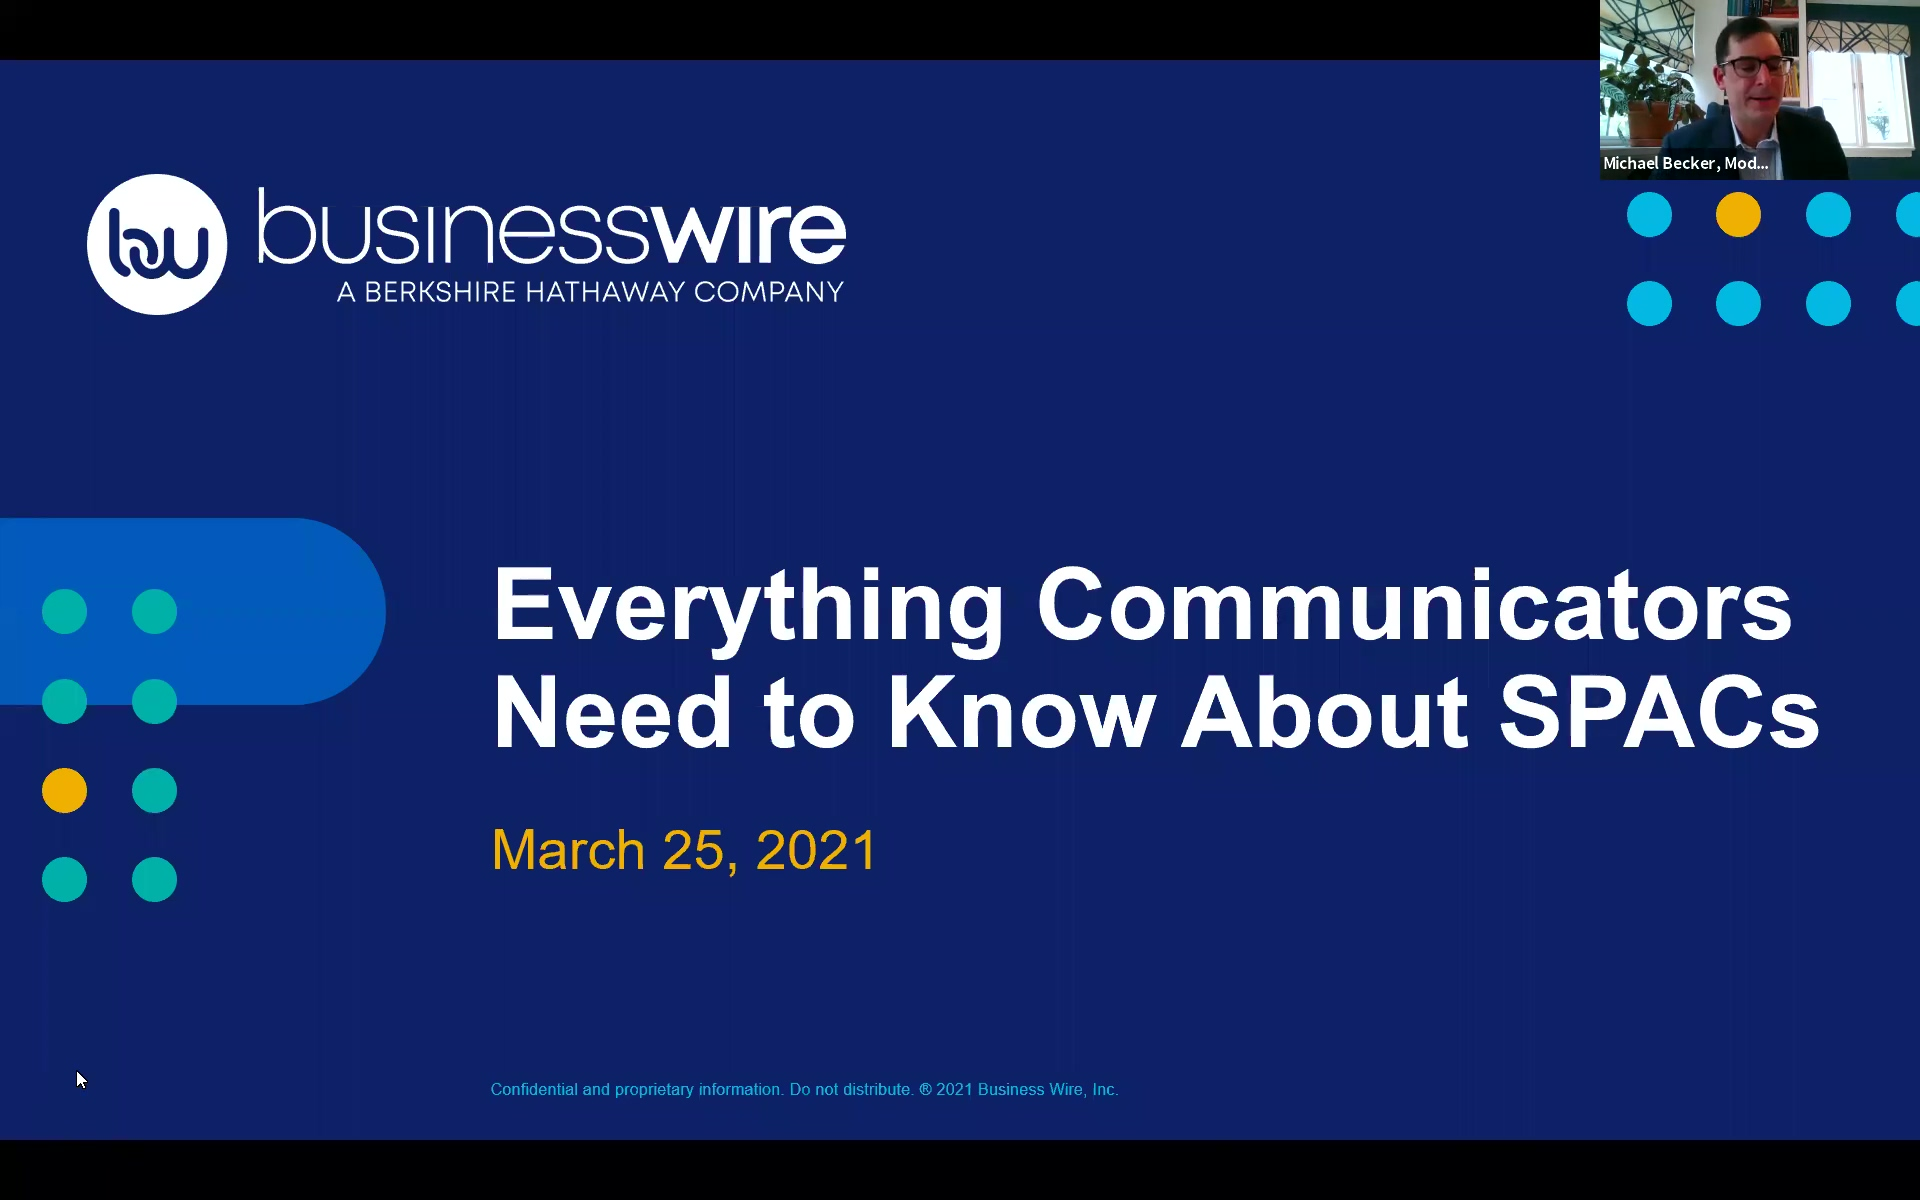 Everything Communicators Need to Know About SPACs_Business Wire Webinar